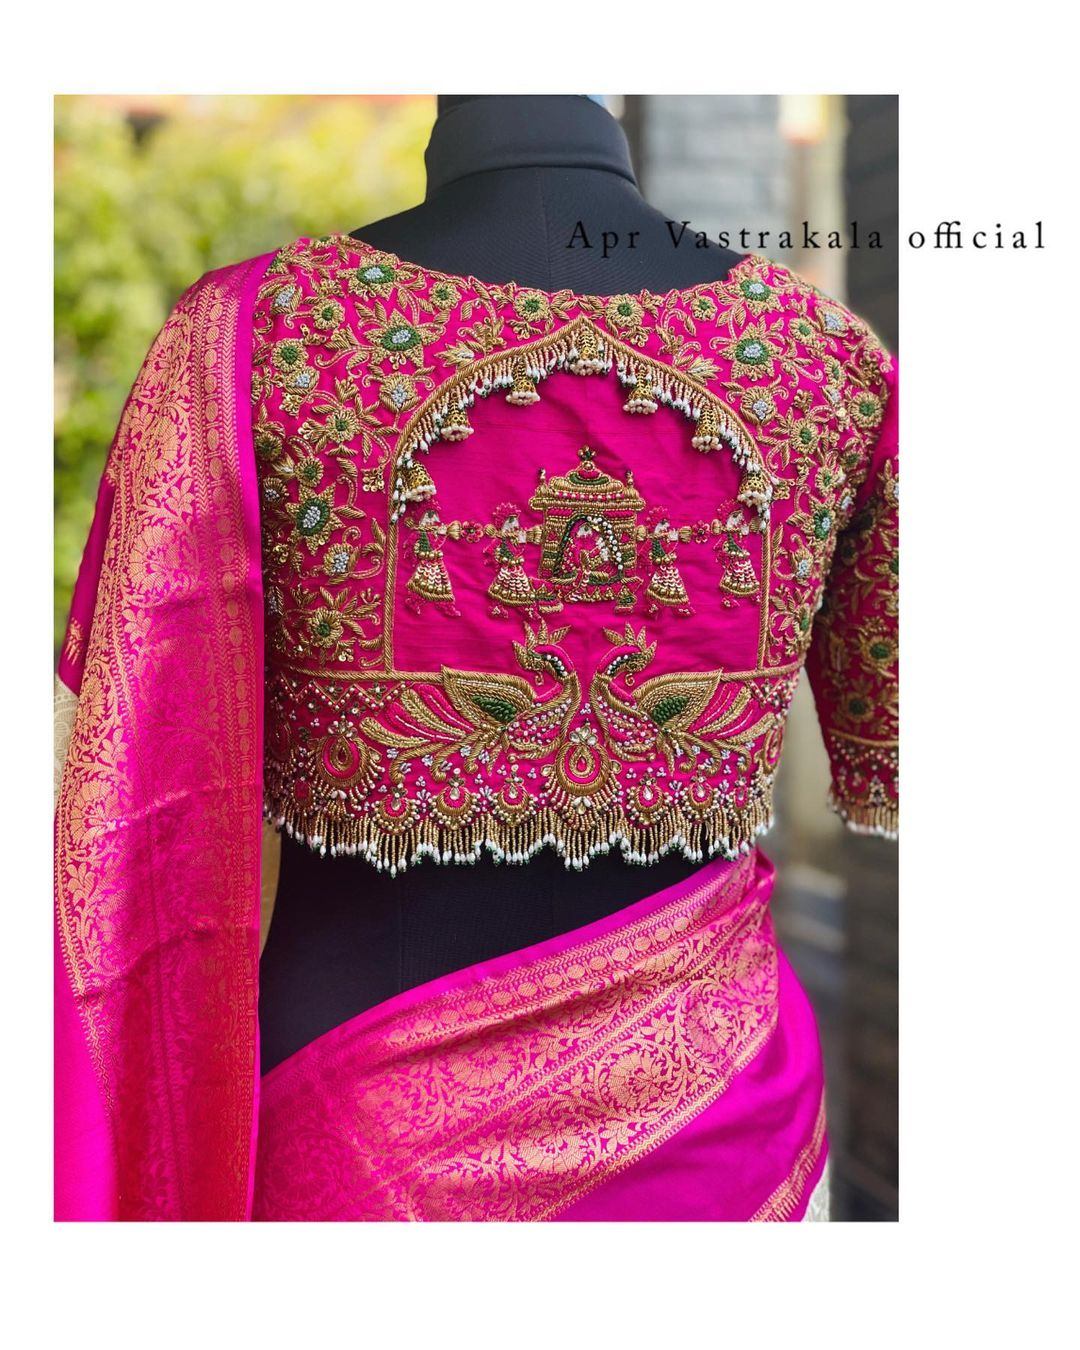 For beautiful bride who wants to go for something different and stunning.bridal blouse design is magnificently done with tiny beads embroidery Multiple color beads are used to embellish the South Indian wedding blouse design. The Kanchipuram silk saree that is paired with this gorgeous blouse. 2021-08-08